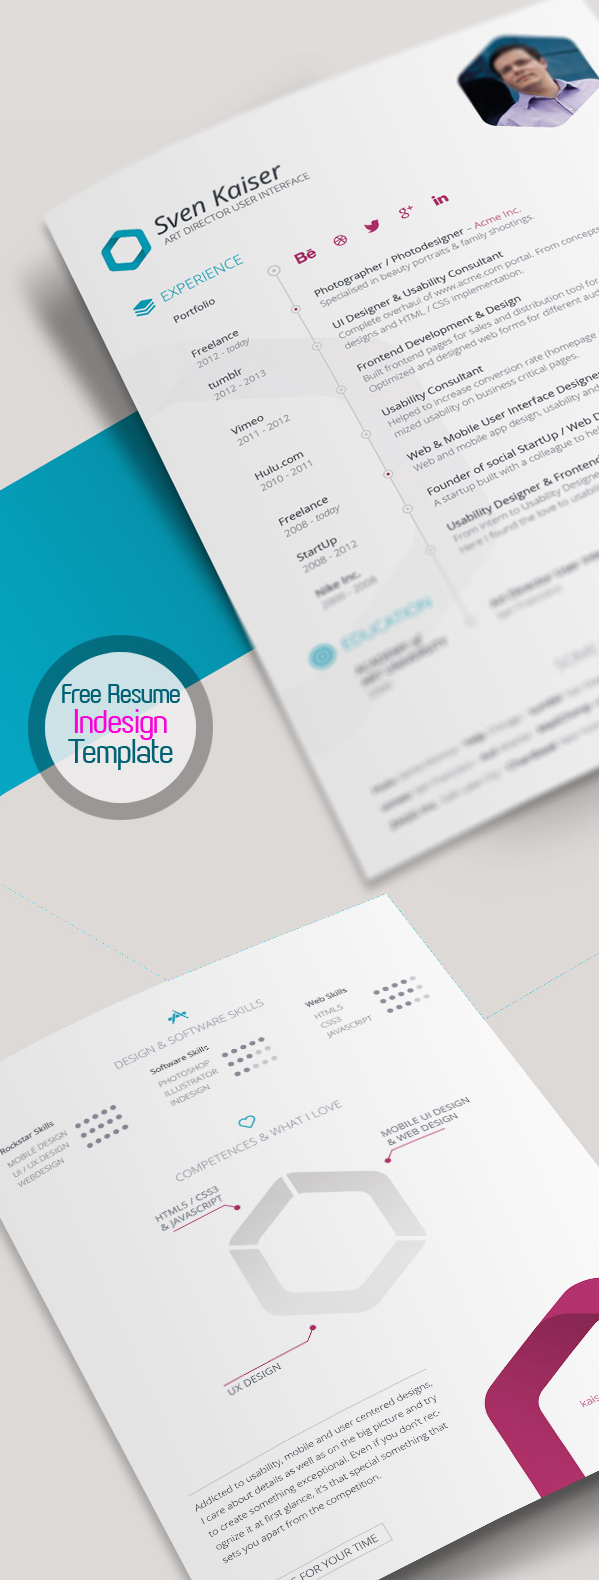 free resume template for indesign vita cv - Resume Templates For Graphic Designers